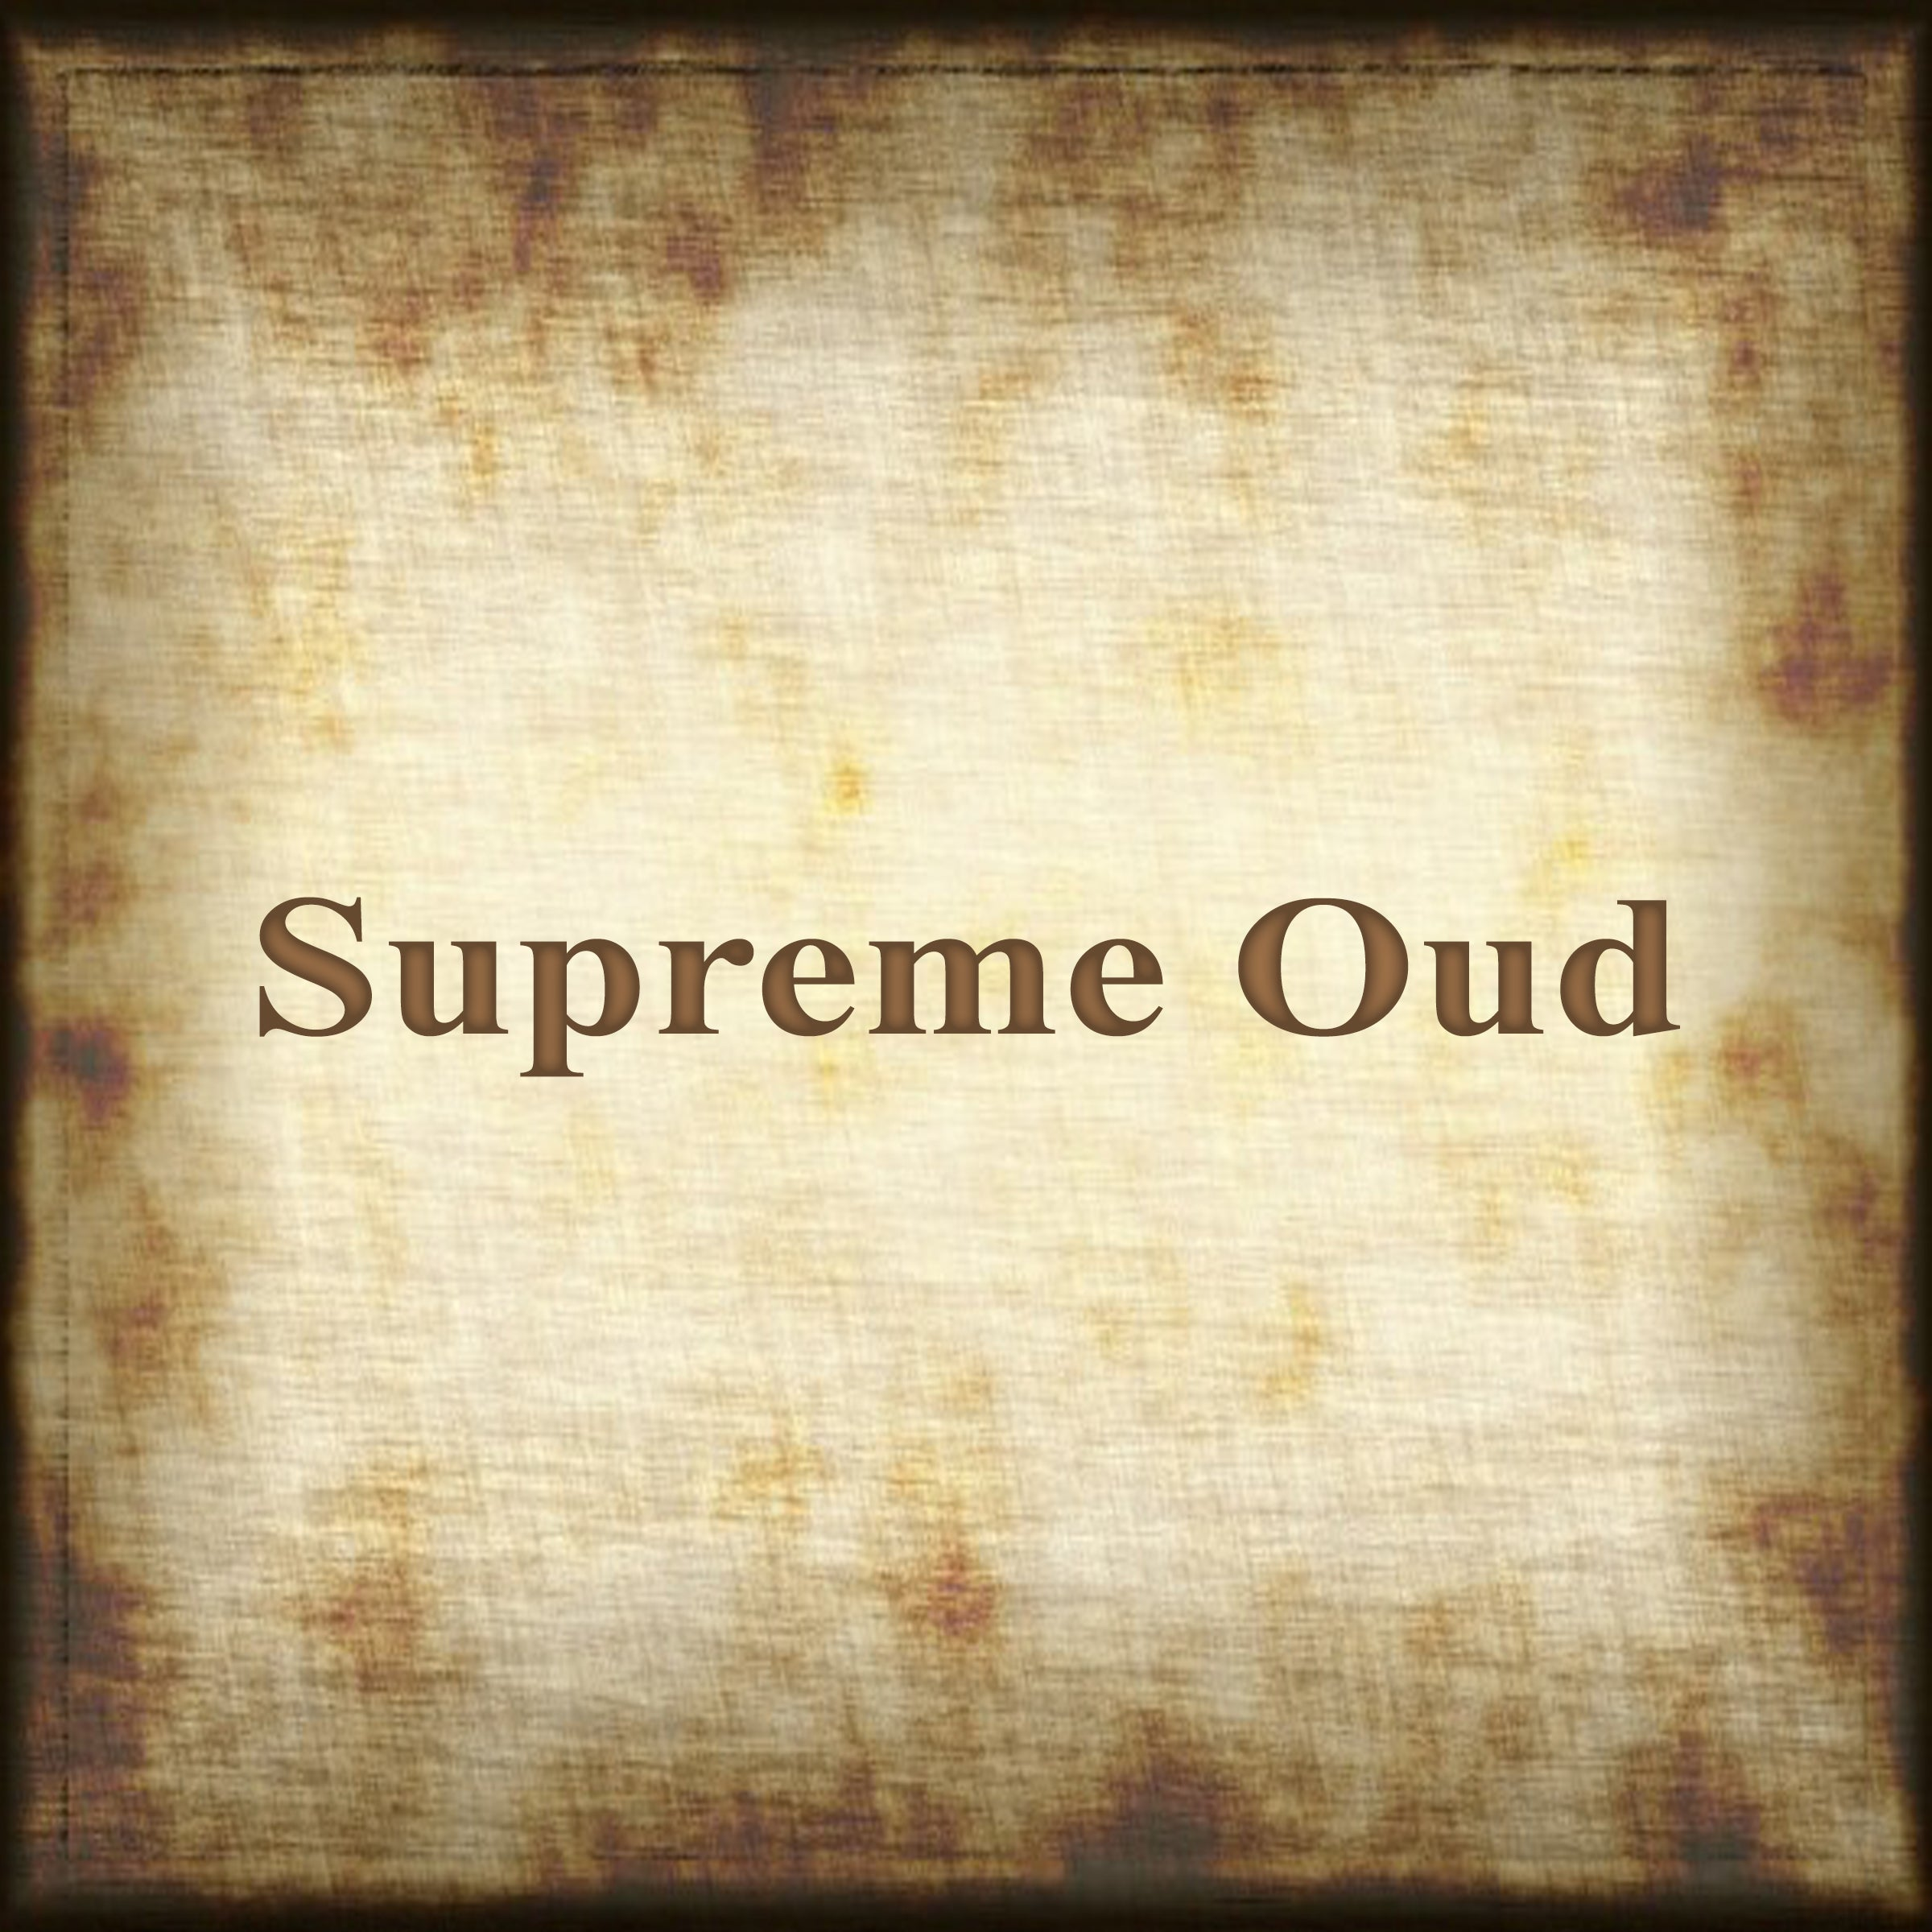 Supreme Oud by Ralph Lauren Polo (M)